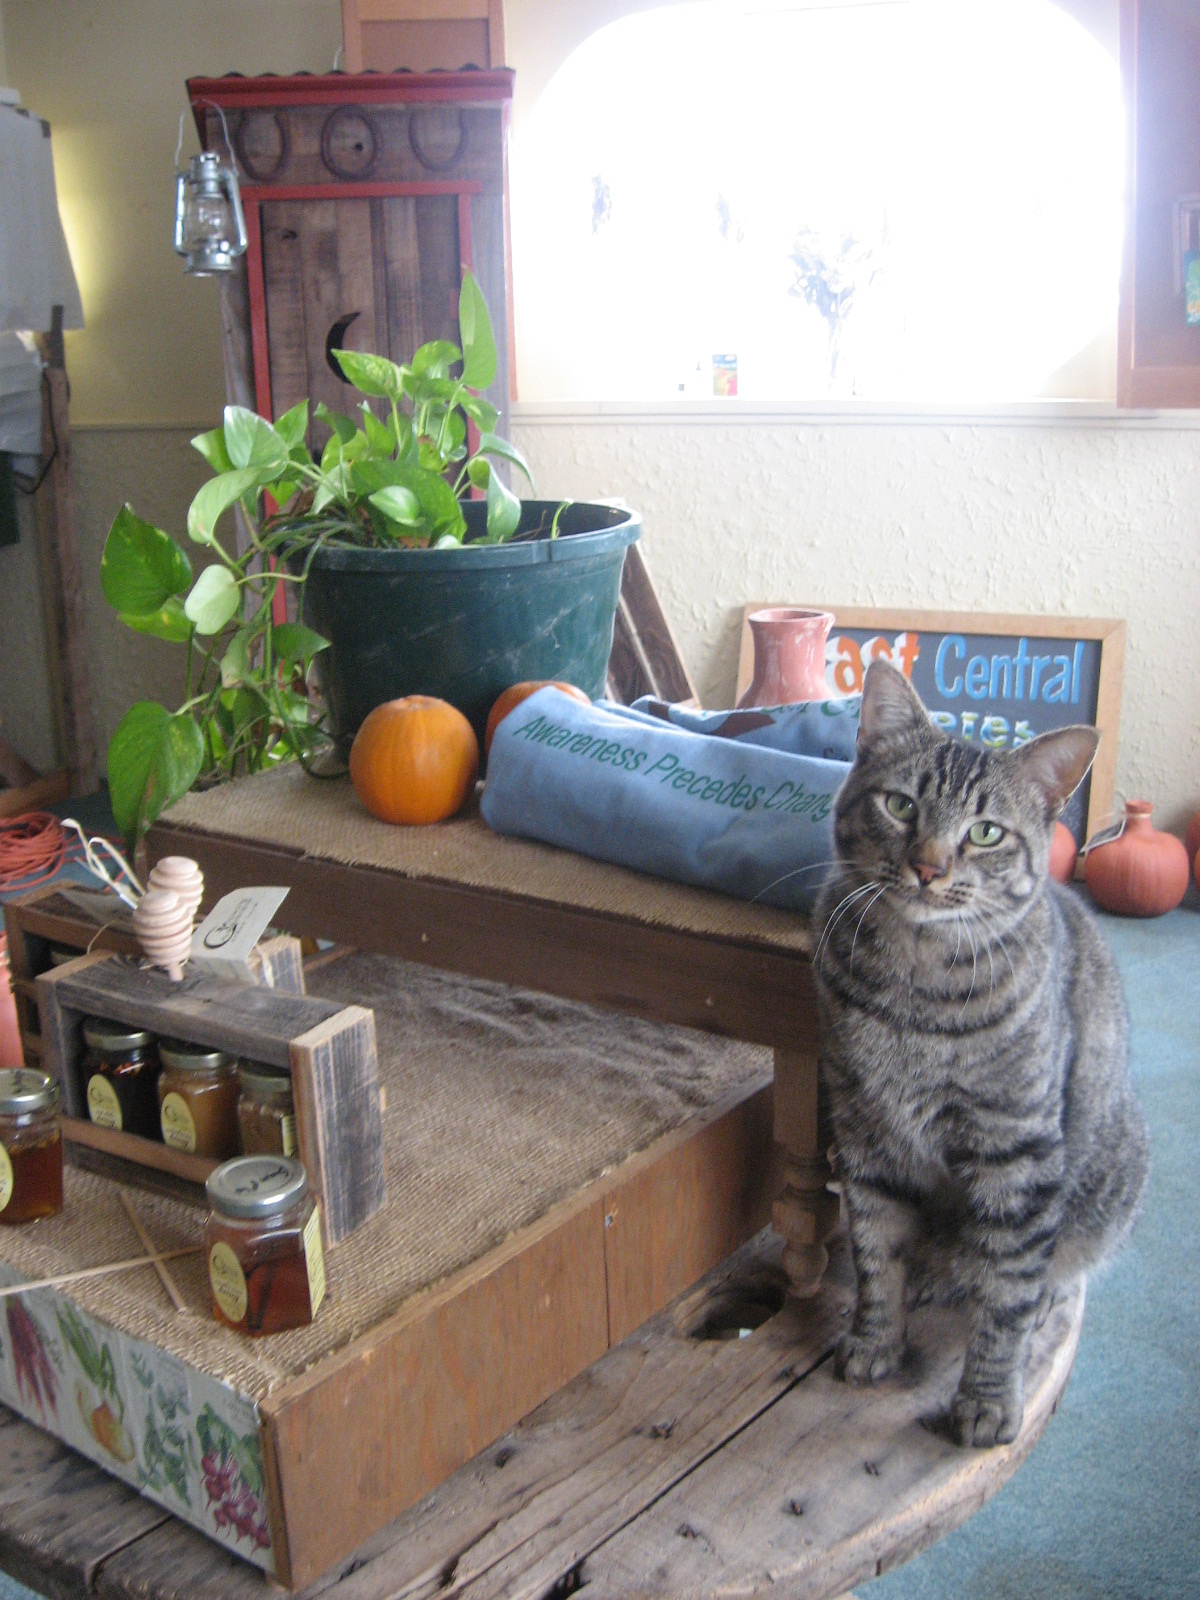 Display sign with products and cat